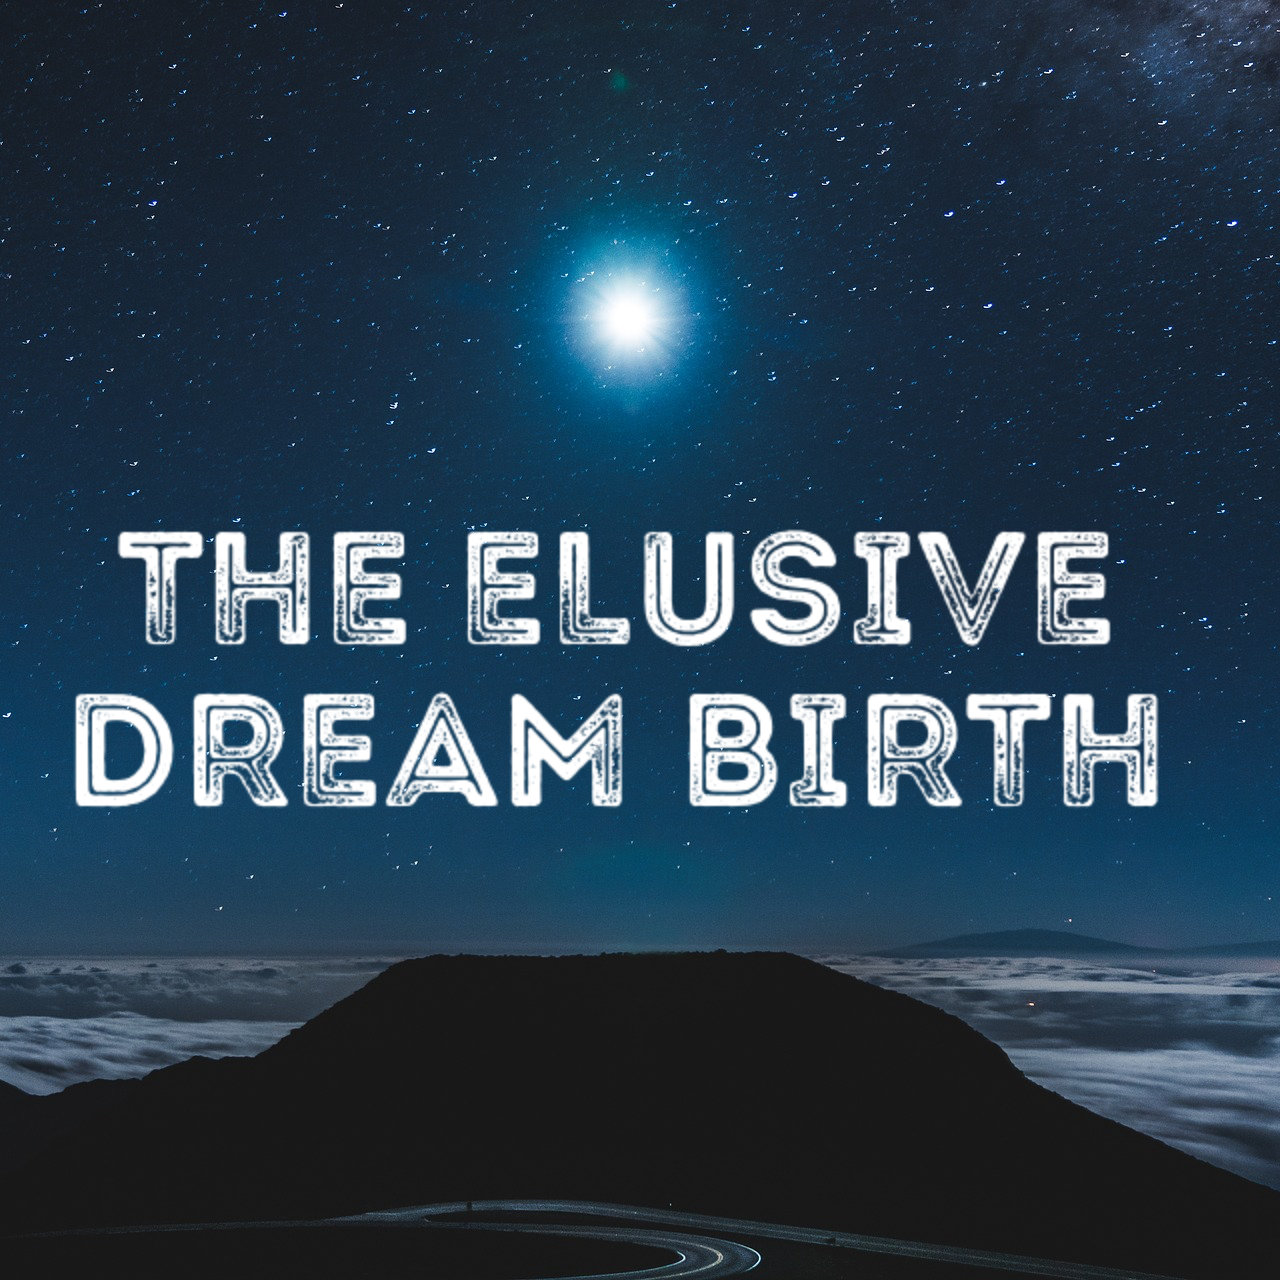 The Elusive Dream Birth